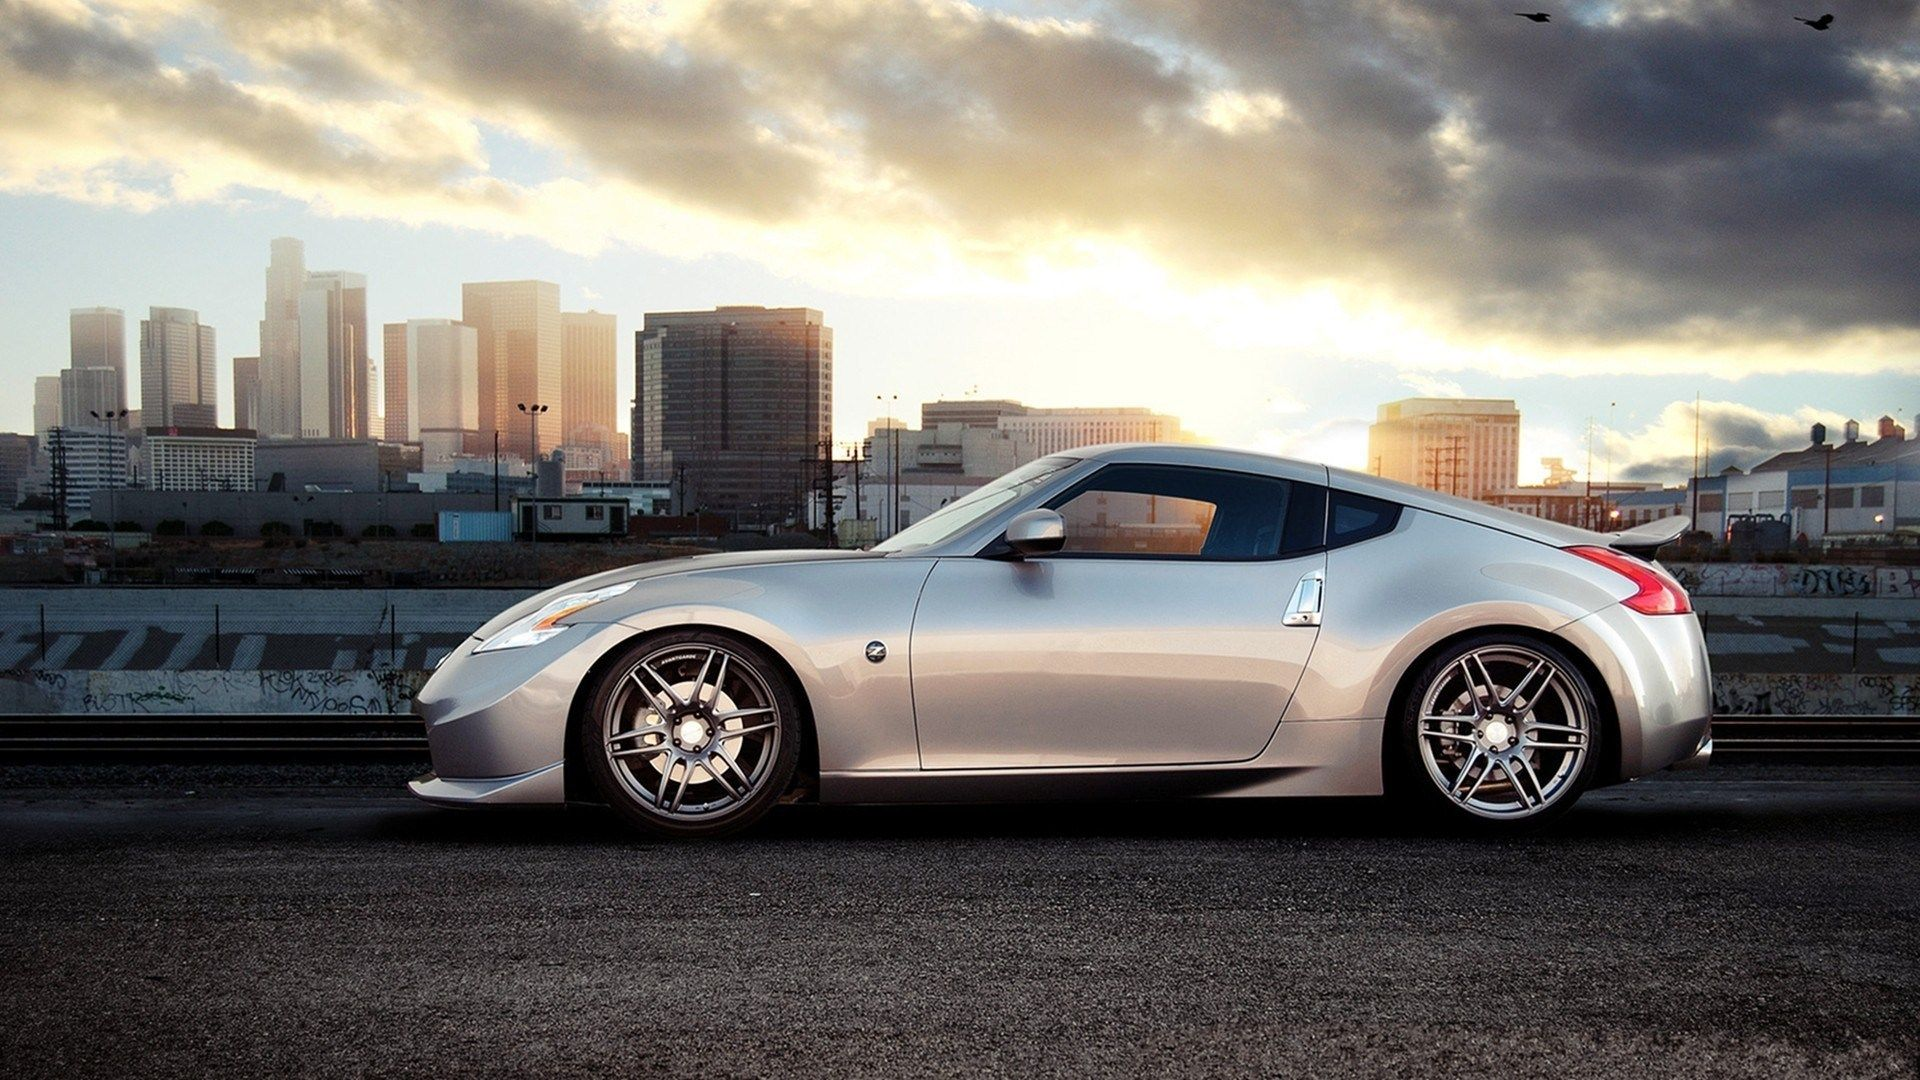 Superbe Nissan 370Z Crystal City Car 2013 « El Tony | Download Wallpaper |  Pinterest | Nissan And Wallpaper